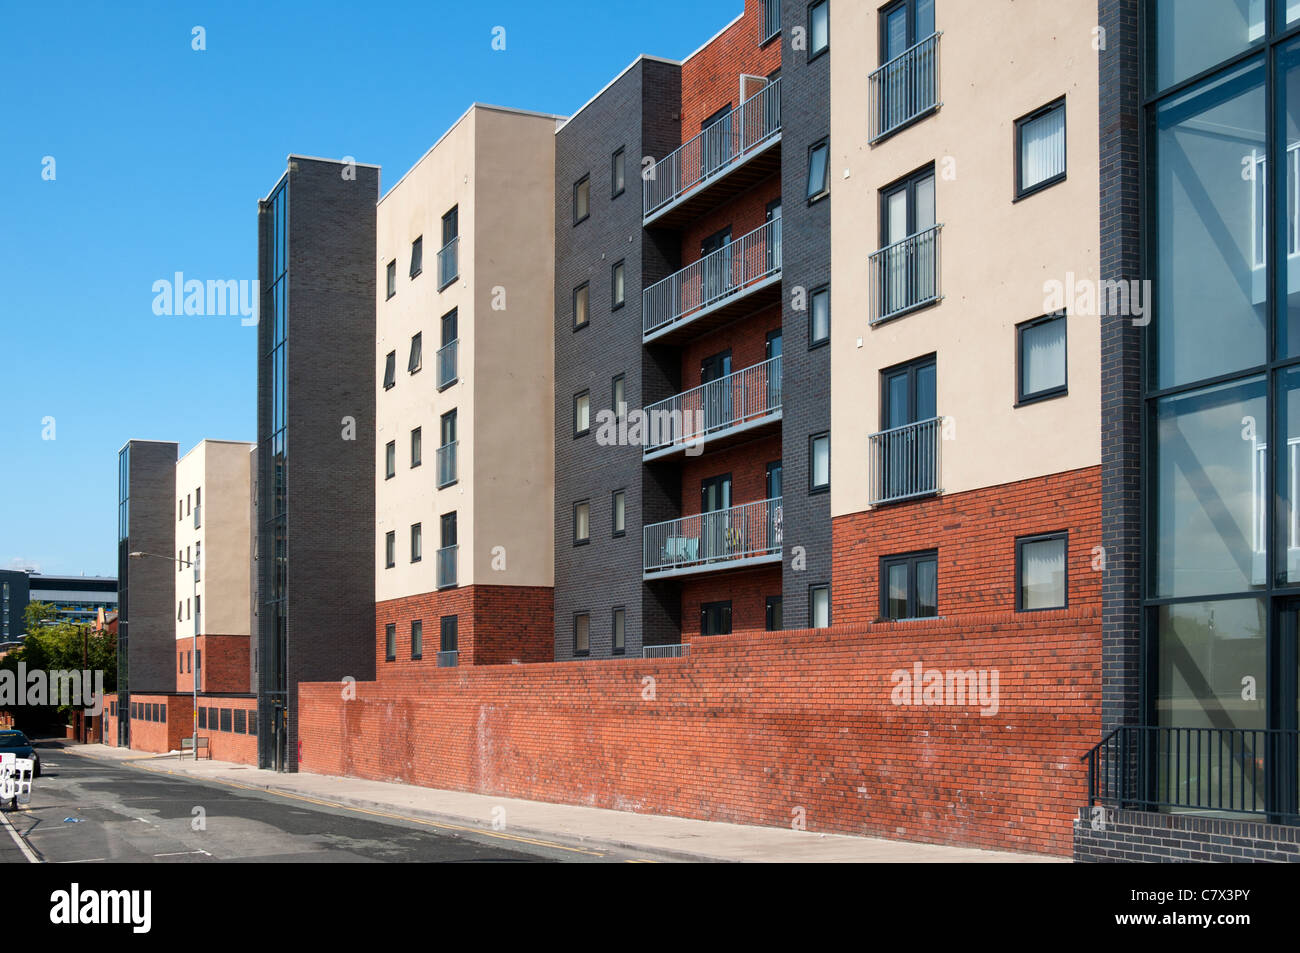 Quantum Apartments, Chapeltown Street, Manchester, England, UK - Stock Image